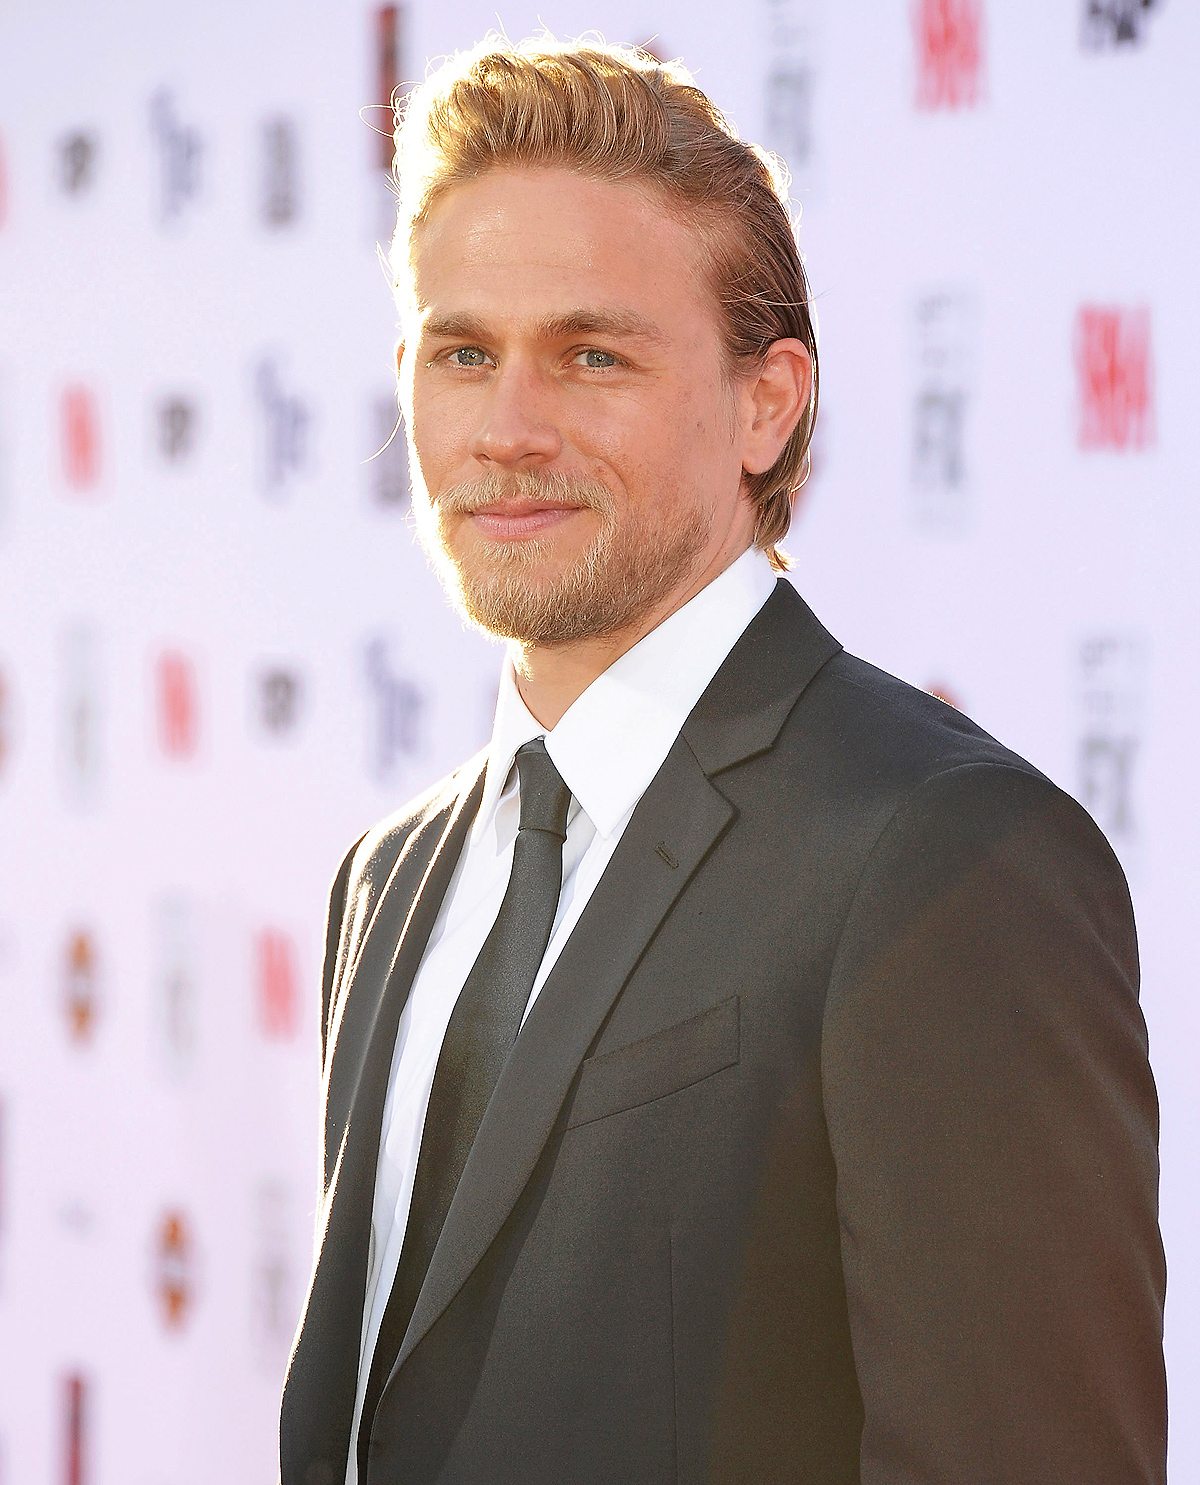 Fifty Shades Of Grey Charlie Hunnam Describes Very Painful Decision To Exit Film Ew Com